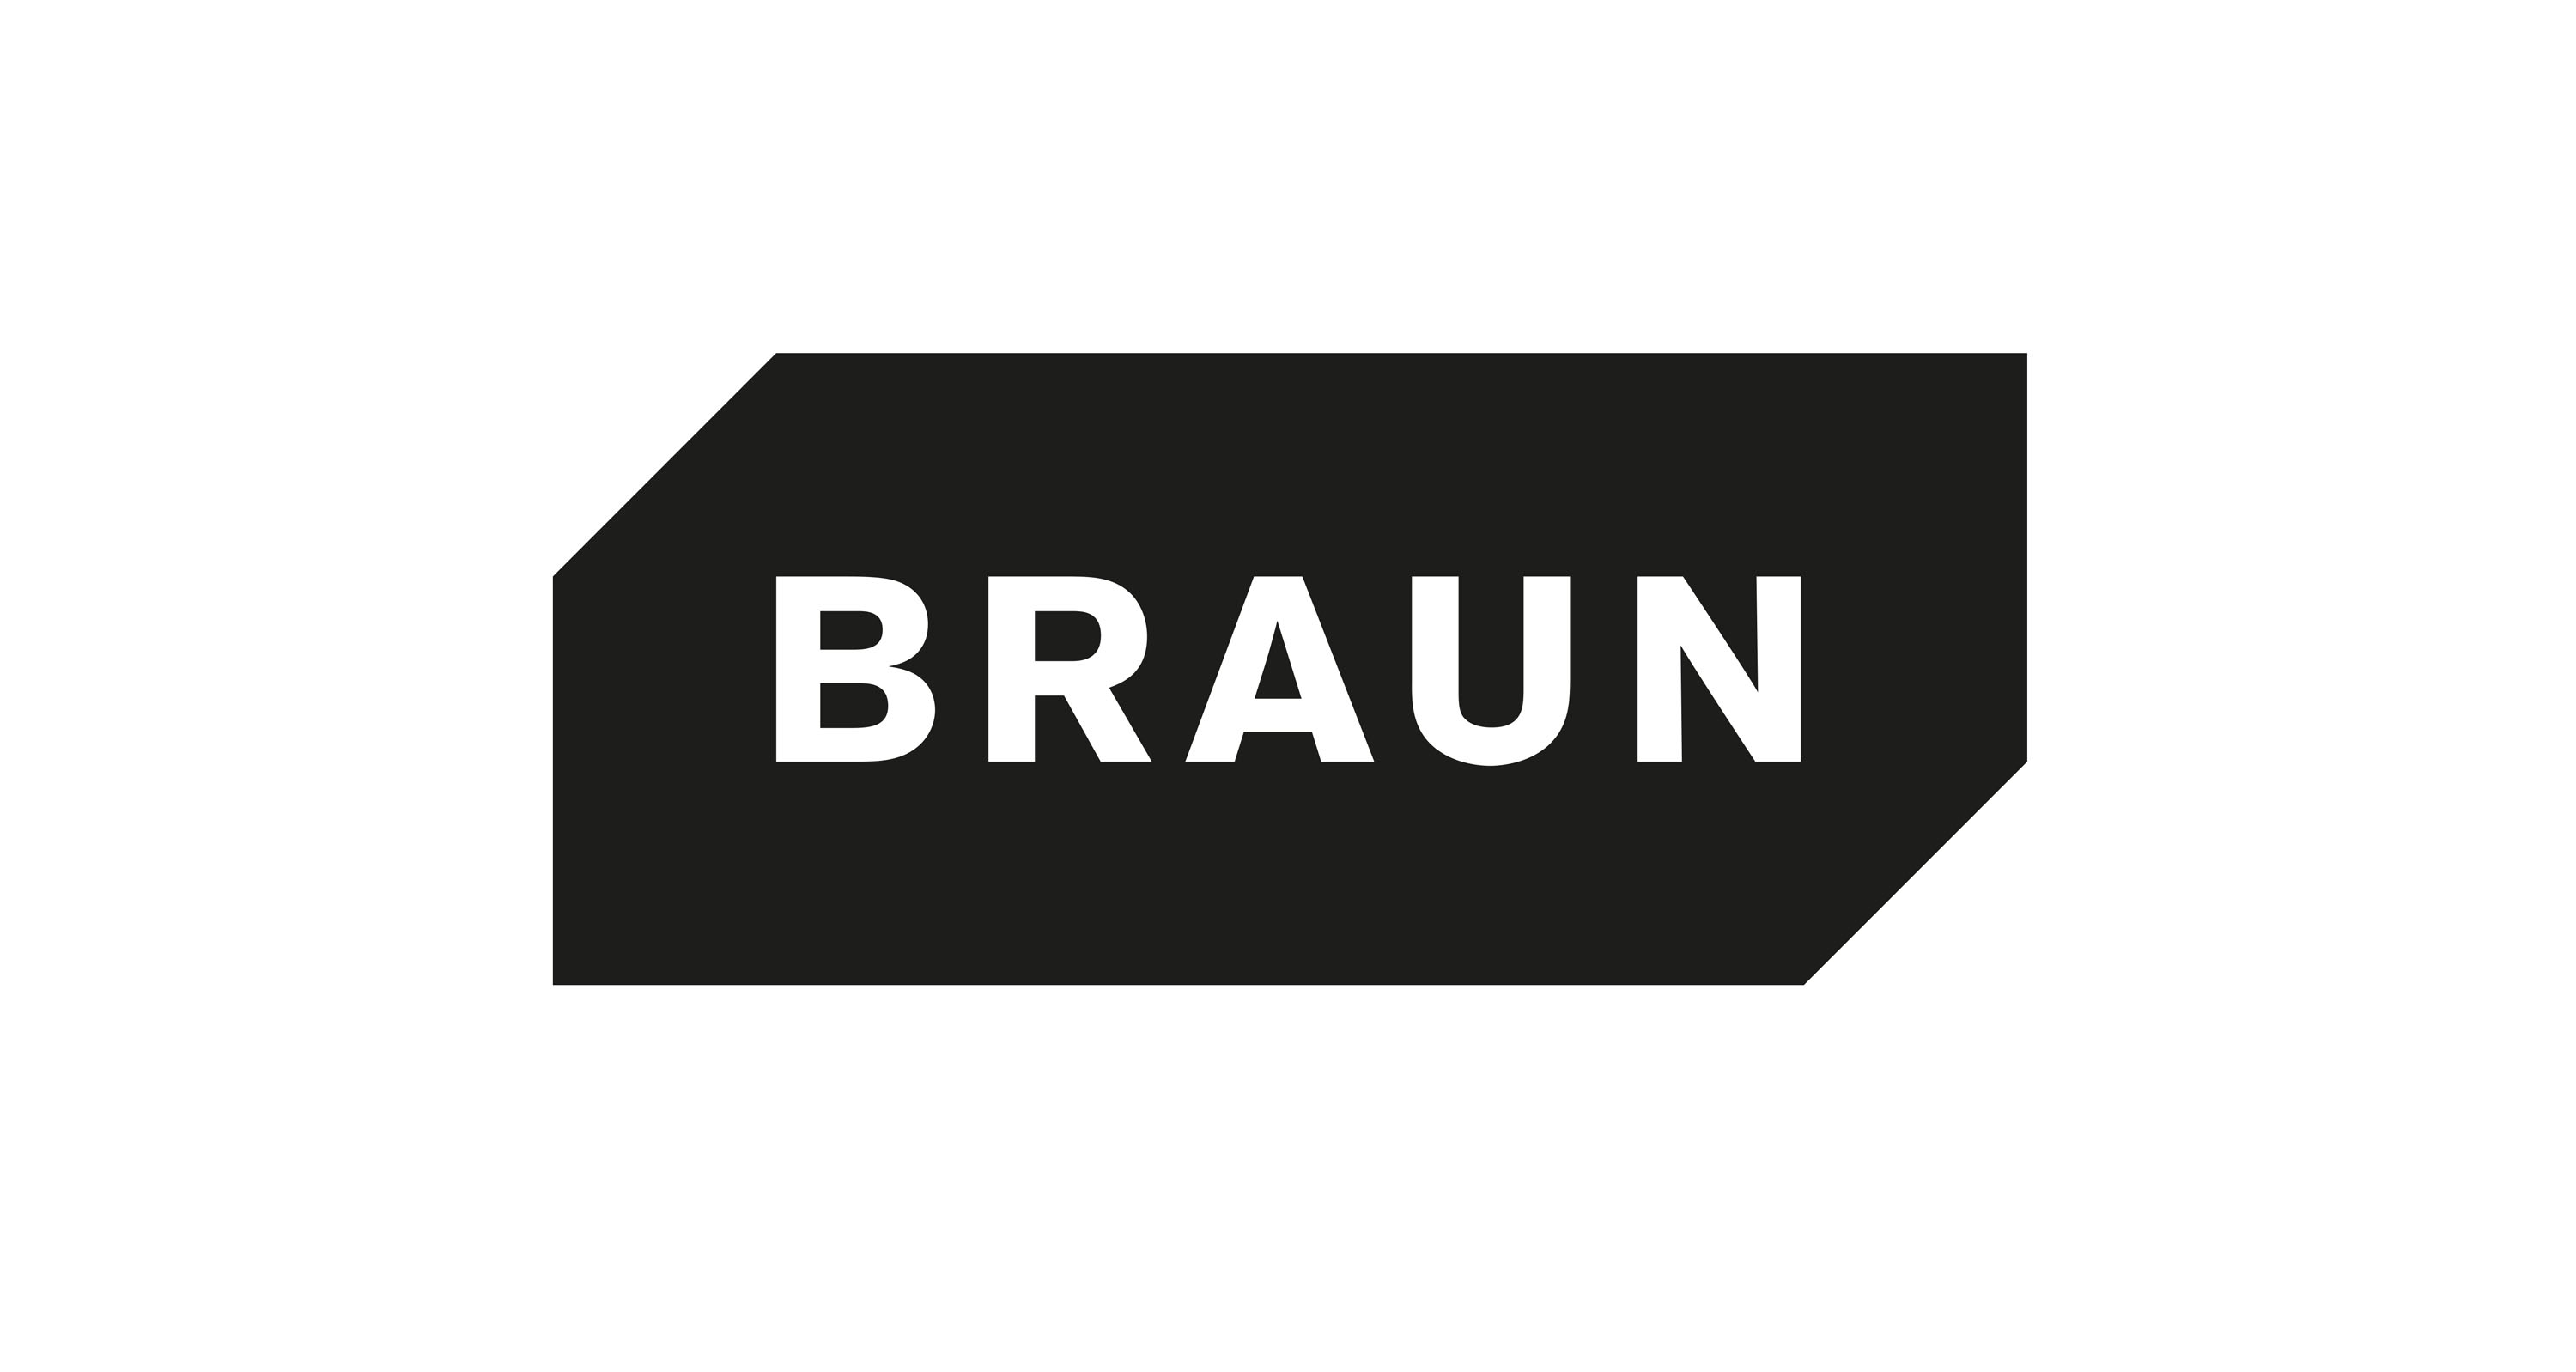 Verlagshaus Braun, Books on architecture, design and urban development, ON Grafik, wibberenz' design